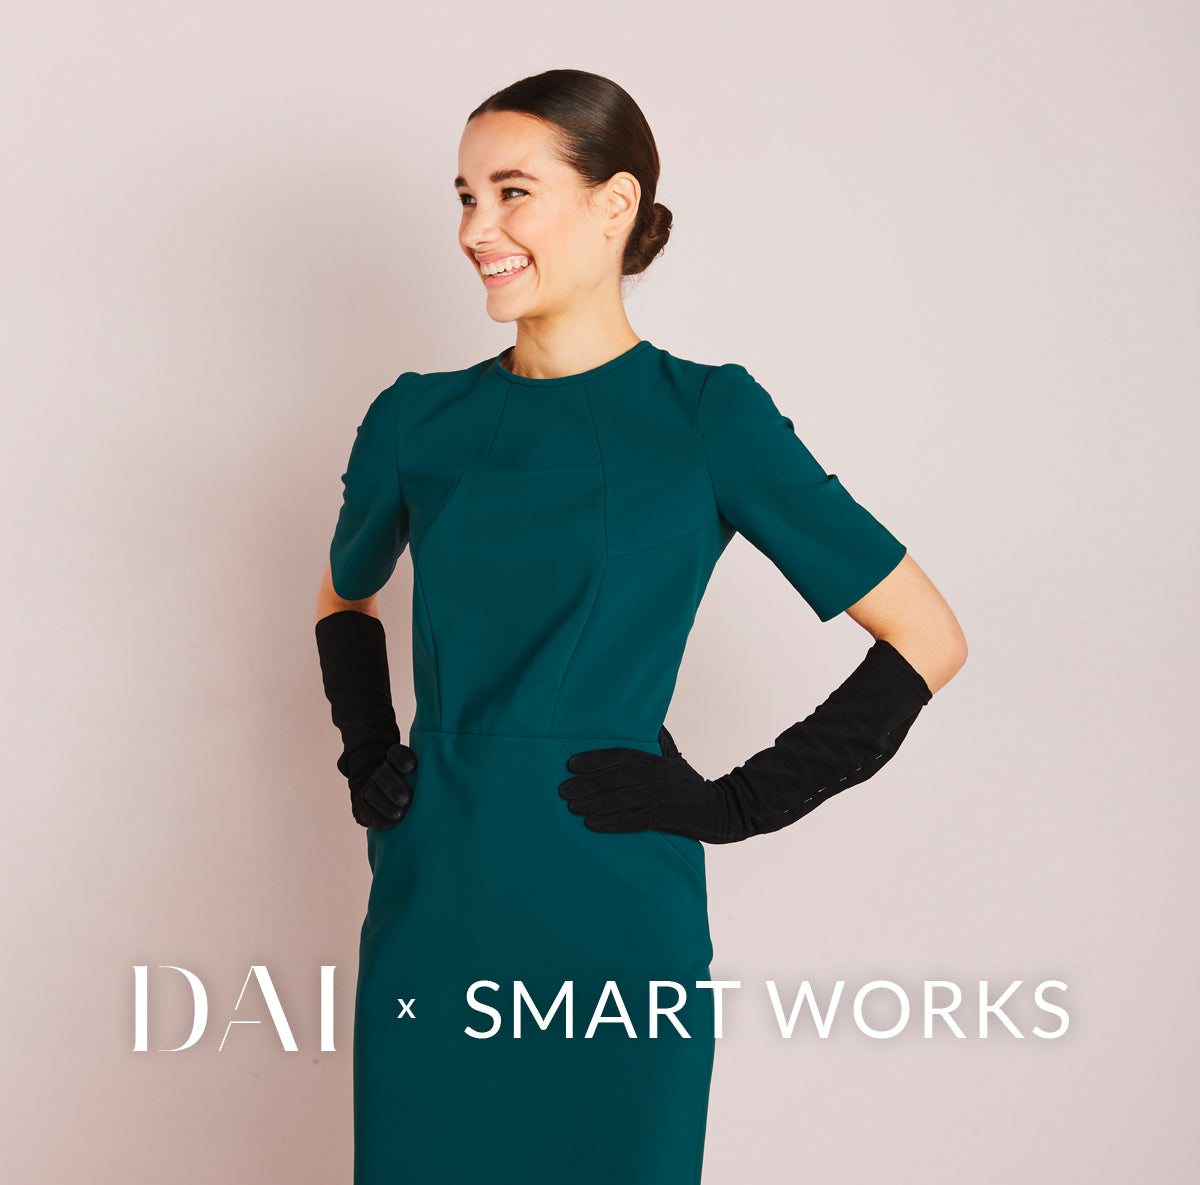 Dai x Smart Works - Dress for a Dress donation (valued at £275)